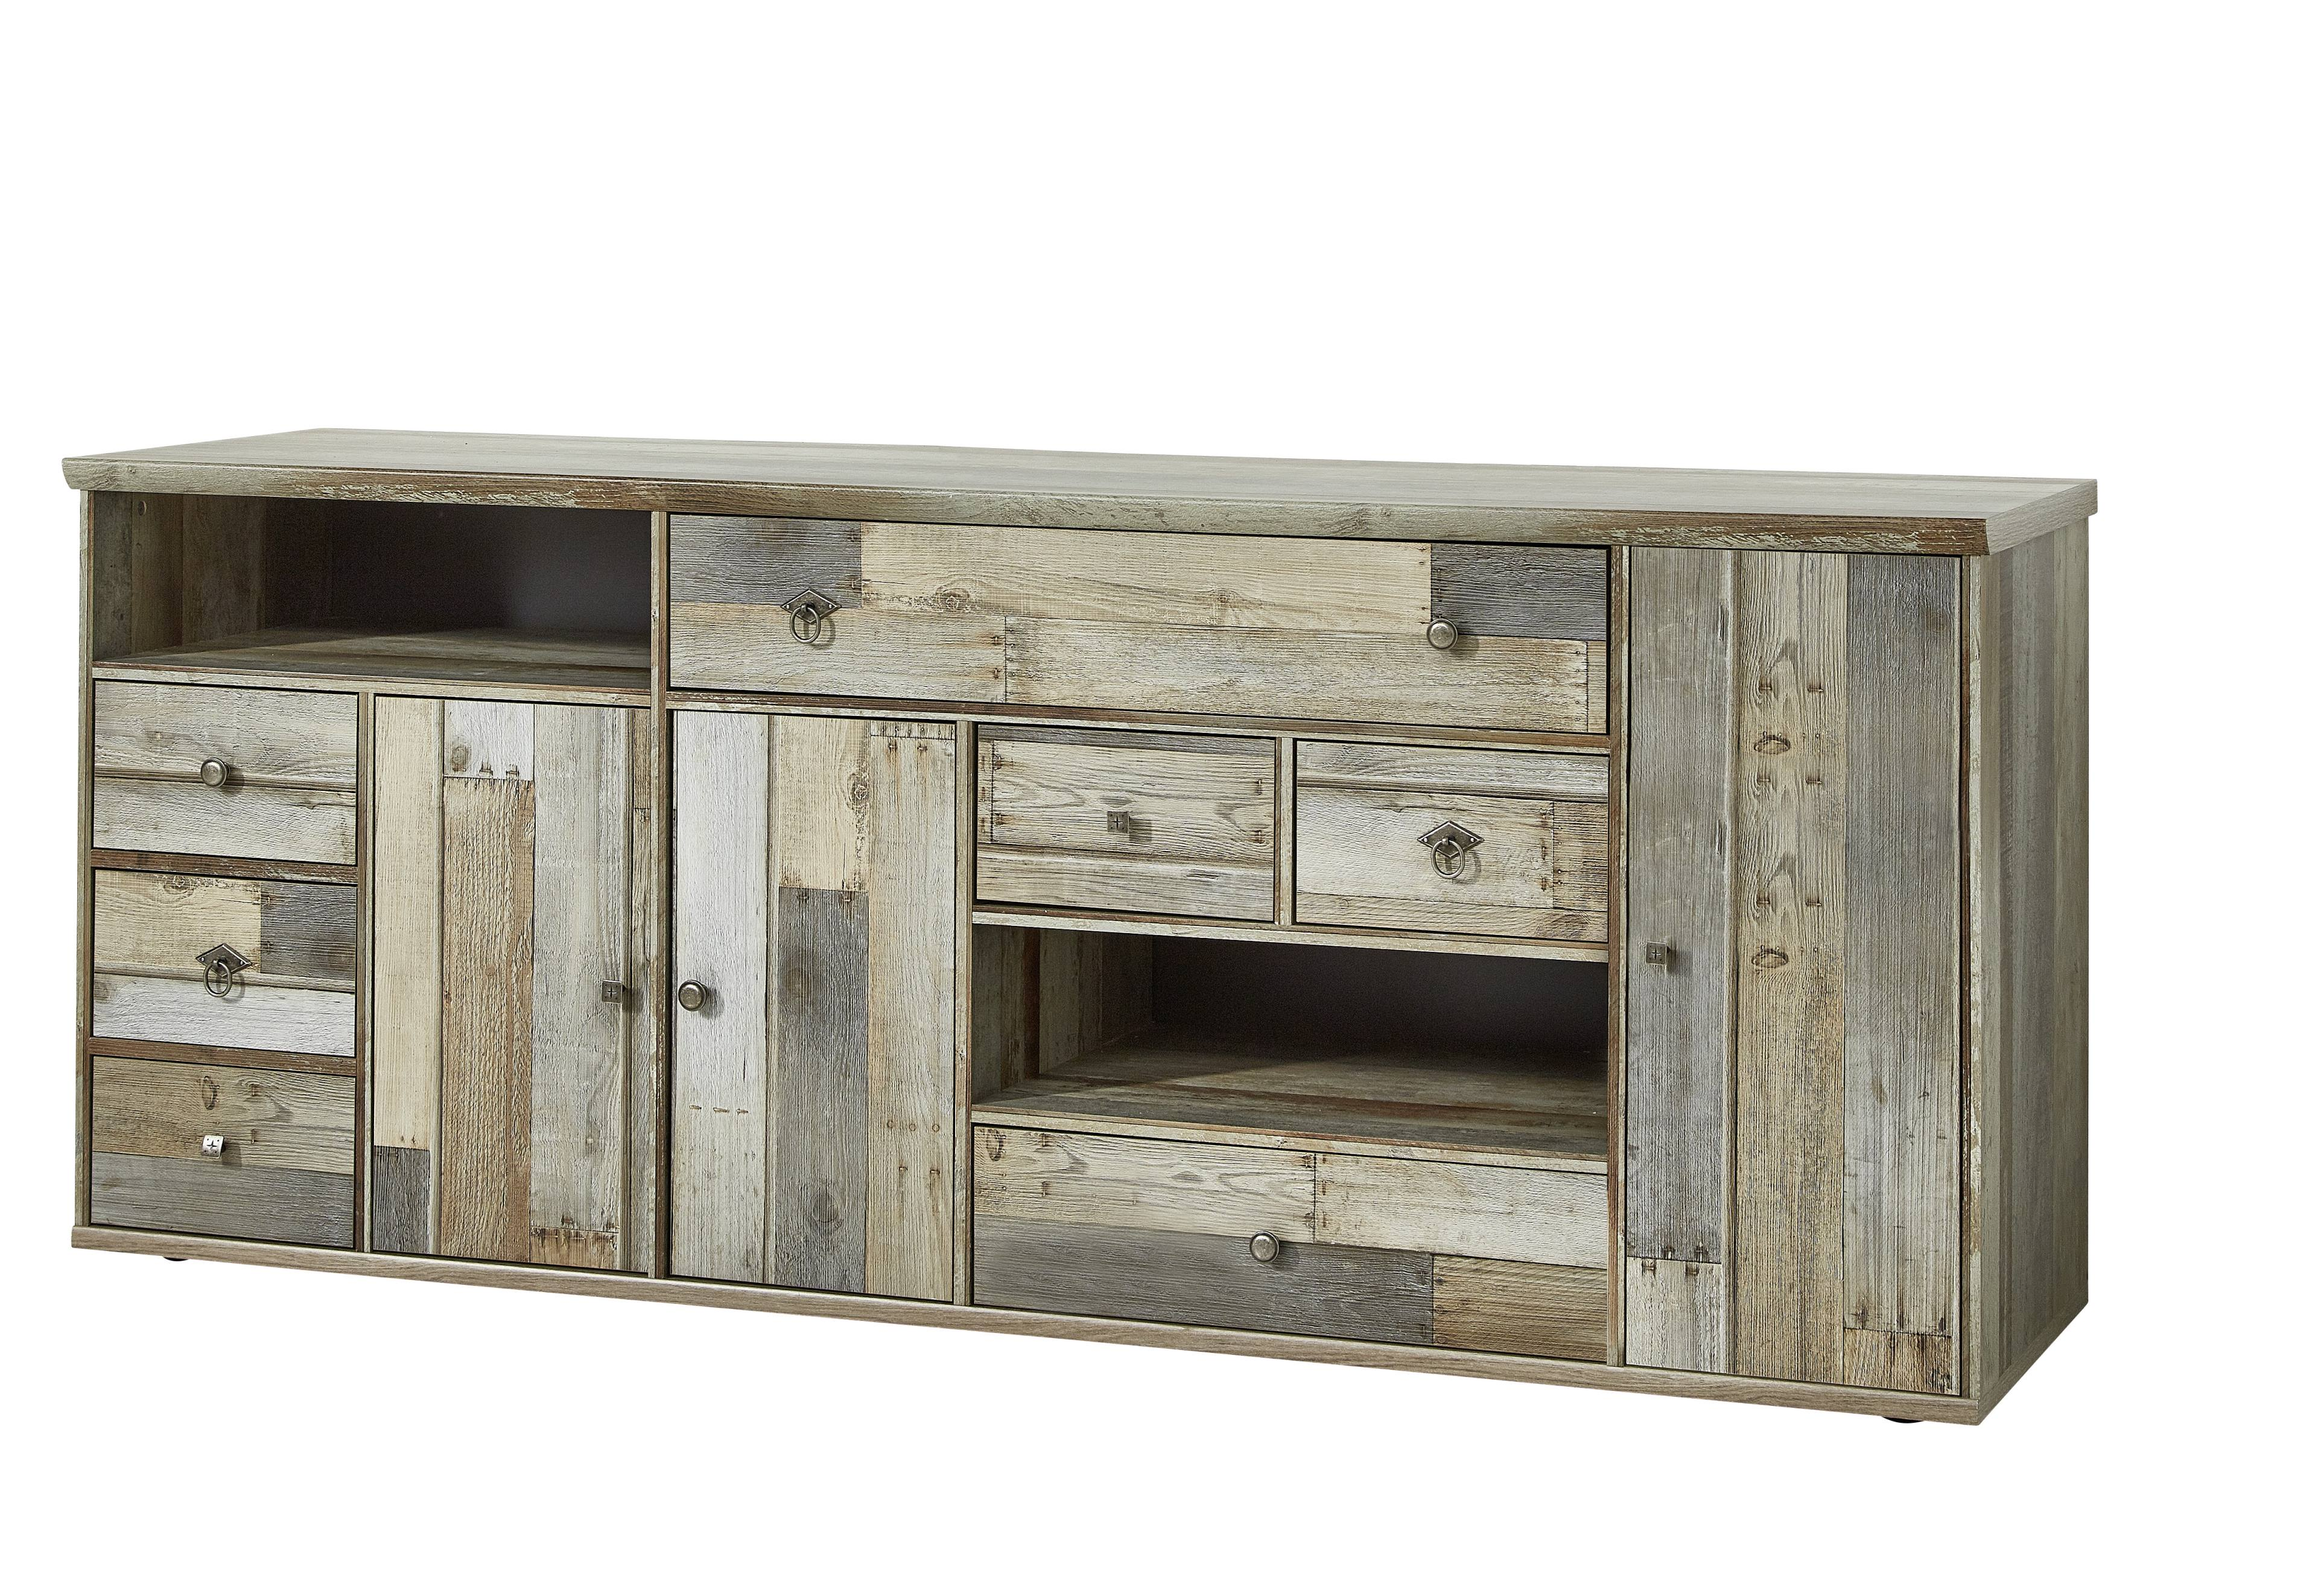 Sideboard Esszimmer Kommode Sideboard Groß Quotbonanza Quot Esszimmer Shabby Vintage